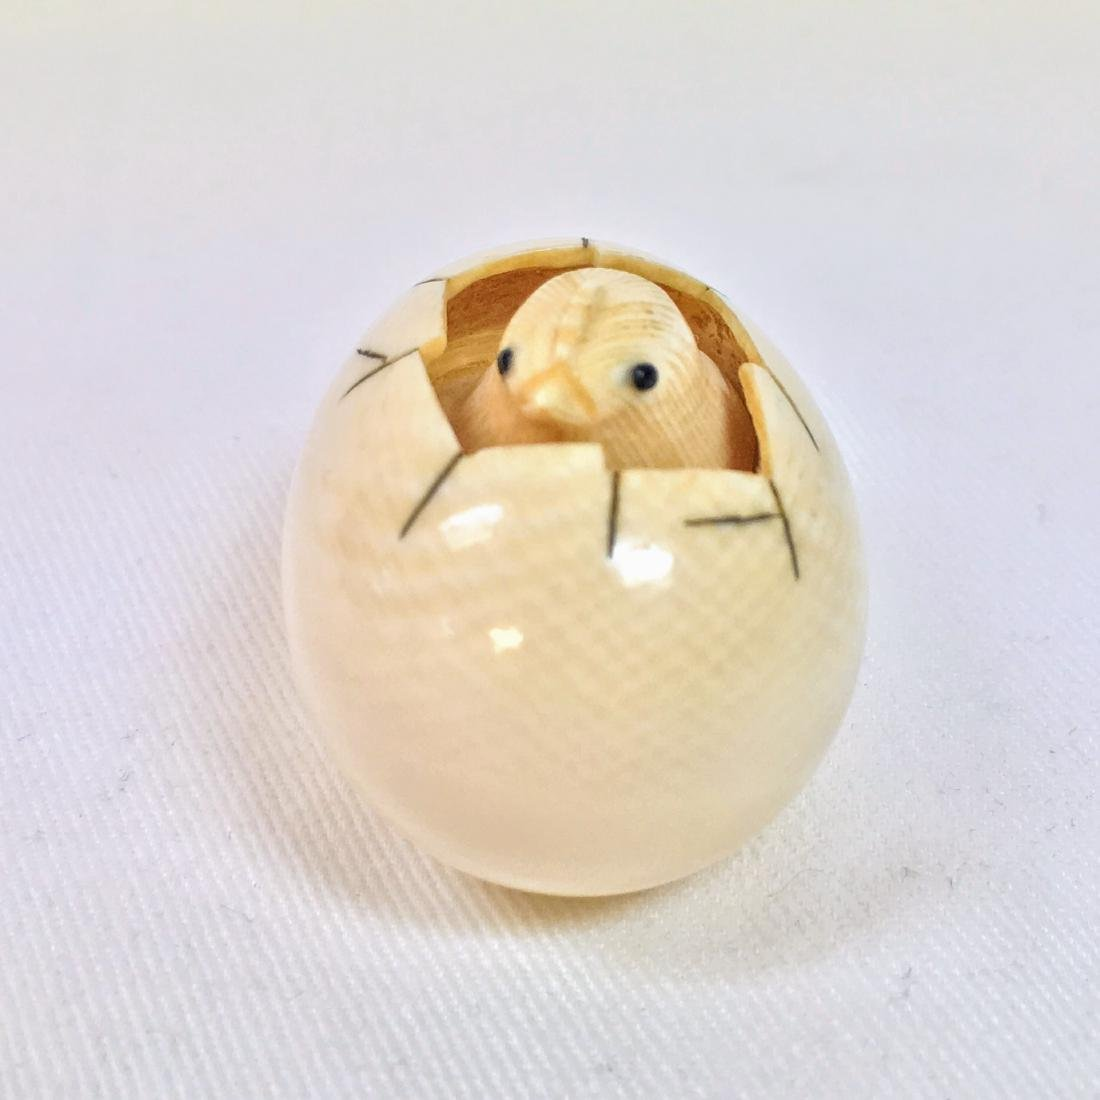 A carved Netsuke figure of a small chick cracking his - 7